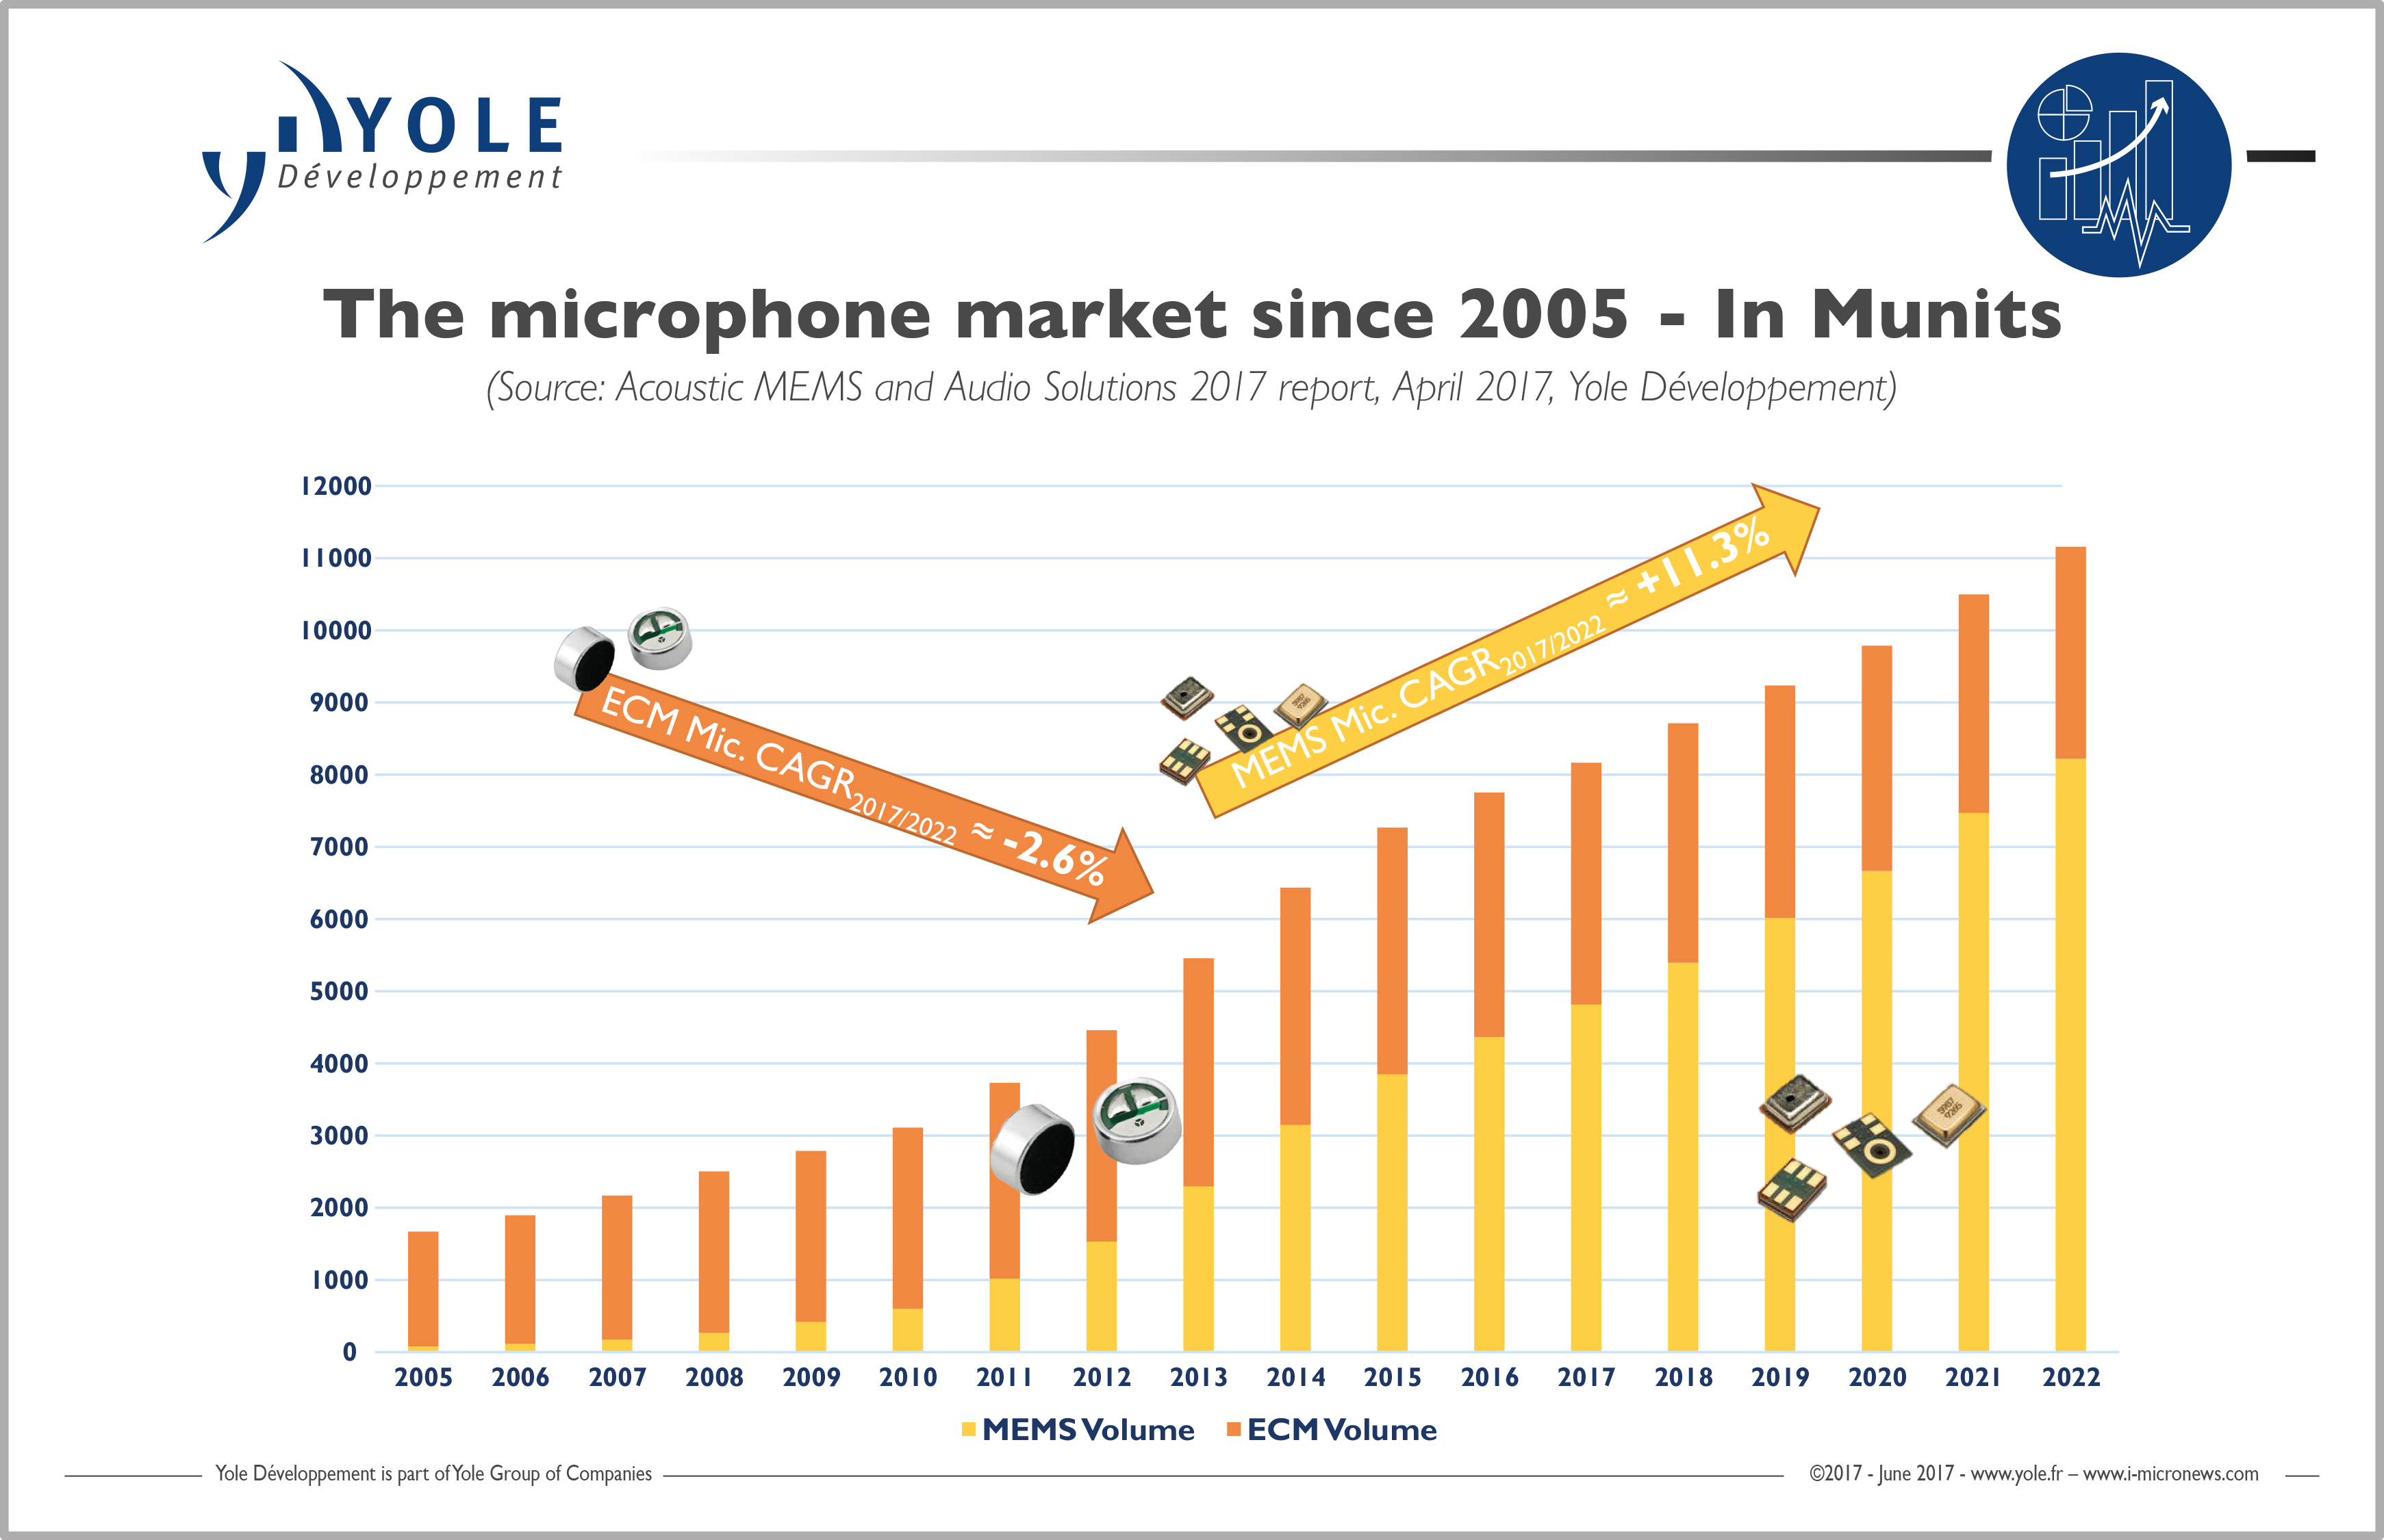 Audio Market Expected To Be Worth 20bn In 2022